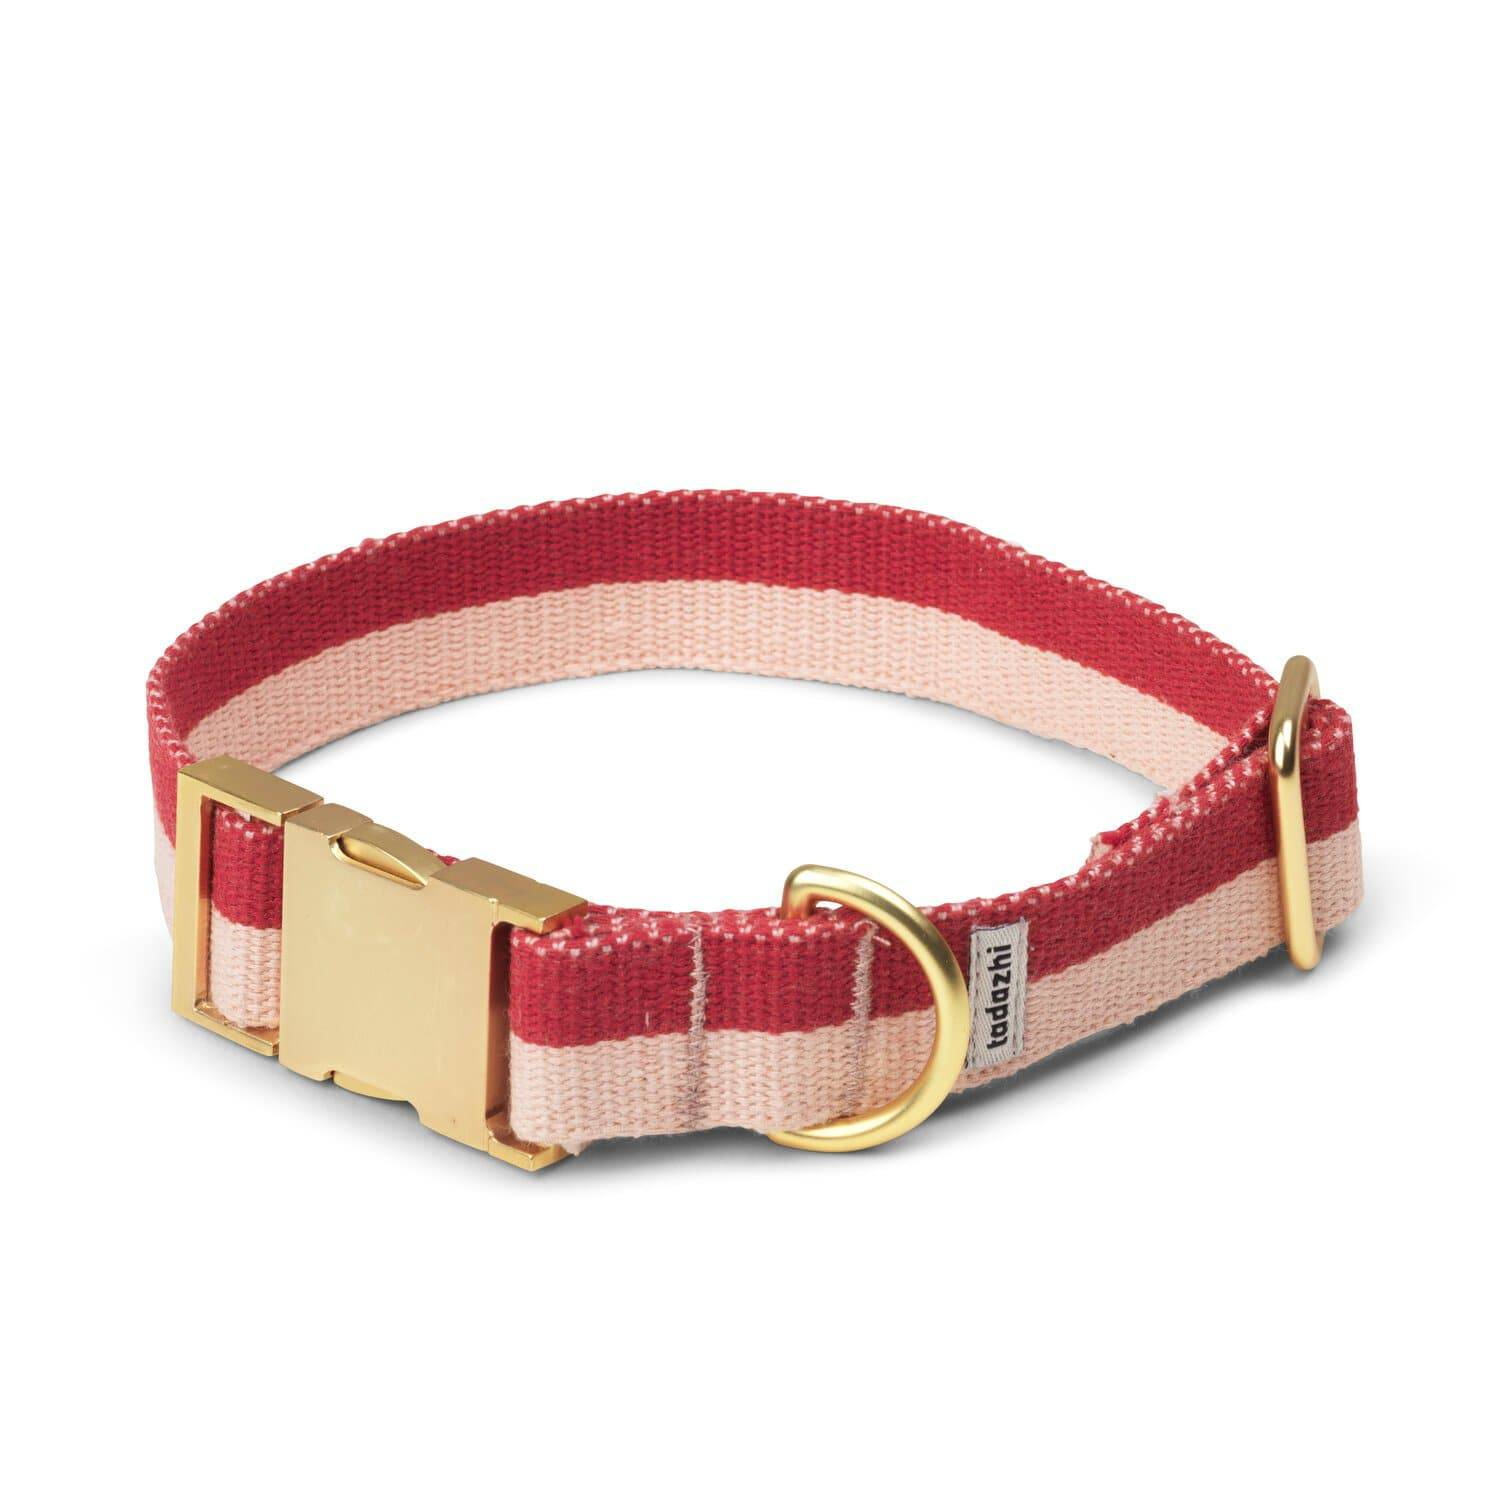 Red & Blush Pink - Cotton webbing Collar & Brass Hardware - Holler Brighton